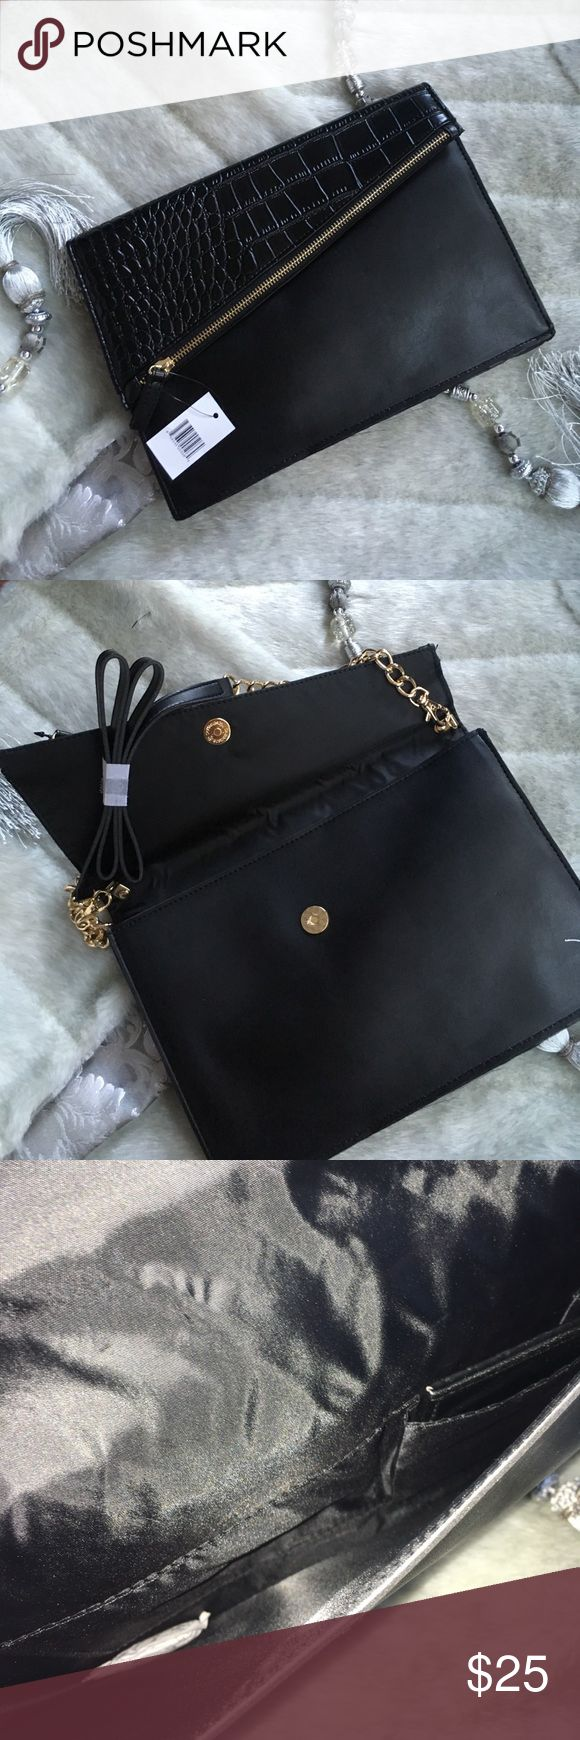 Black Vegan leather w/Faux alligator clutch/bag NWT vegan leather in black with Faux alligator detail clutch or crossbody purse - very versatile in use - can be use in all 3 ways - the top zipper part opens up for additional storage Bags Clutches & Wristlets